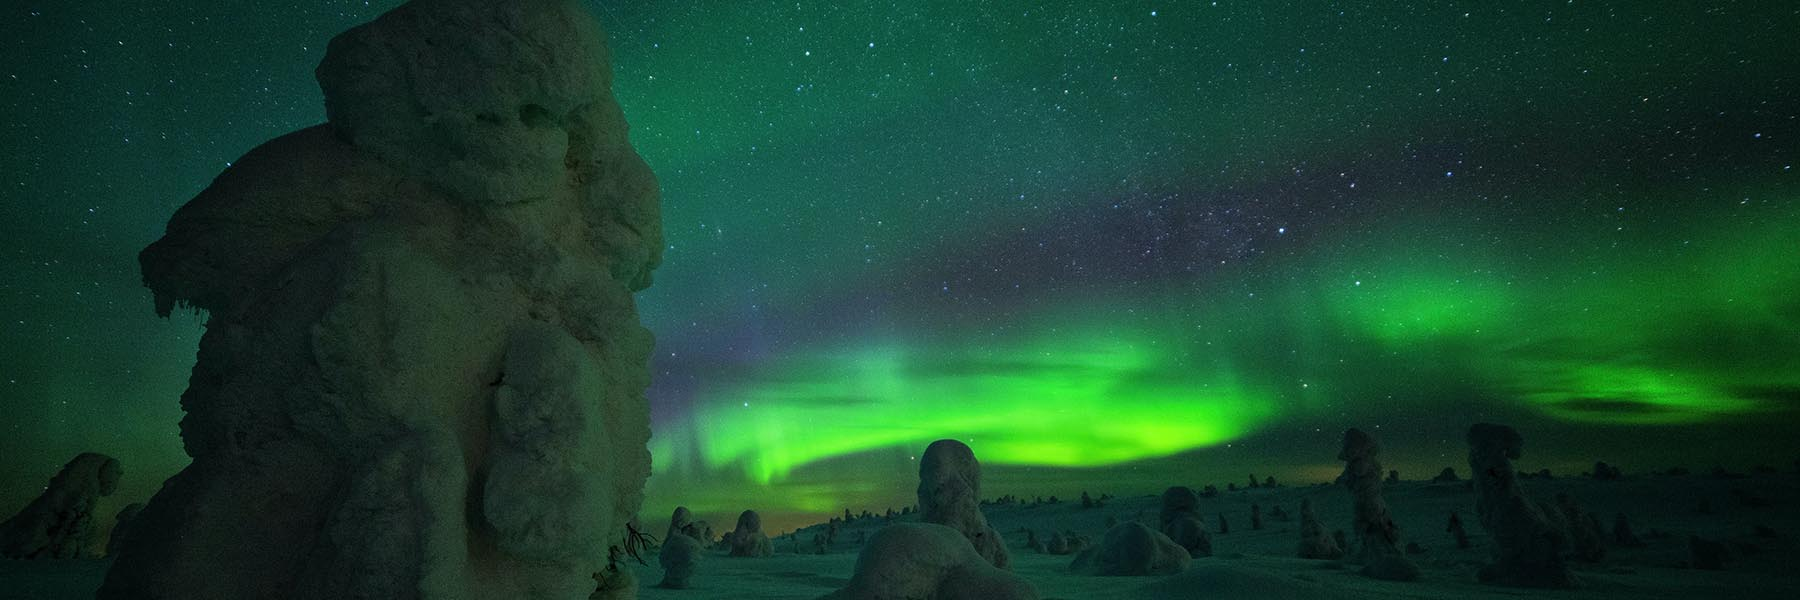 Scandinavia Northern Lights Highlights